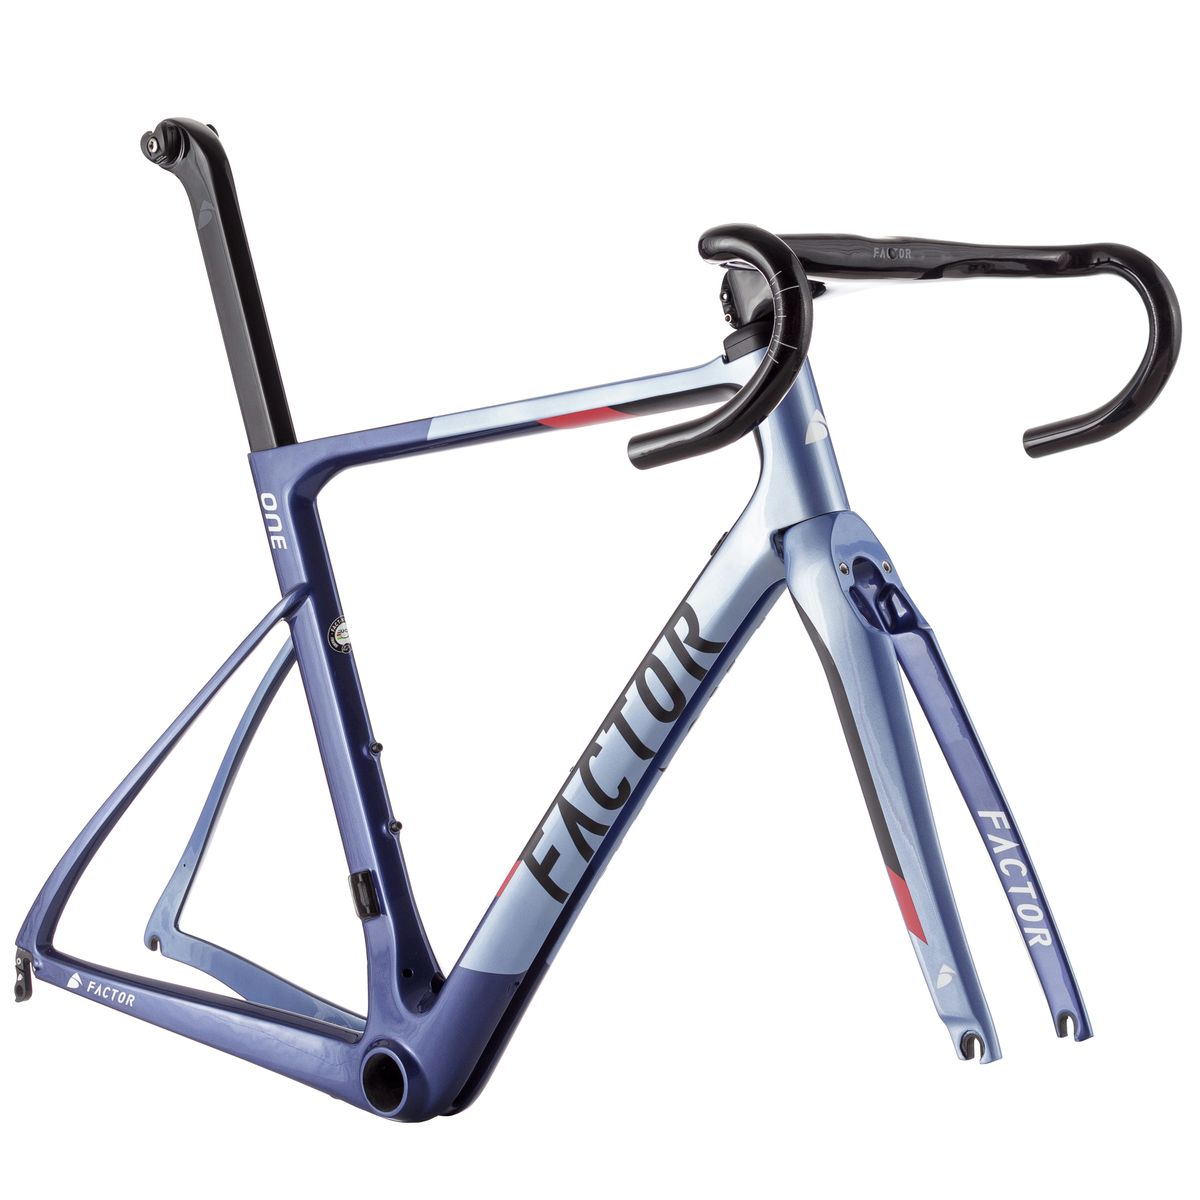 Best Road Bikes Under $1000: What Are They?